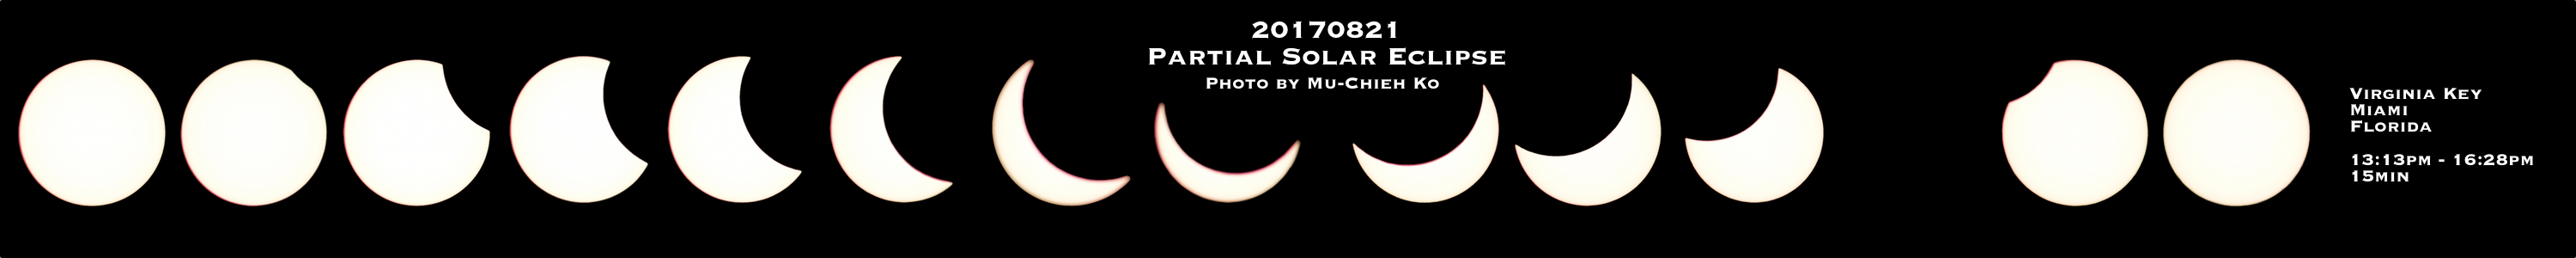 Hurricane scientist Mu-Chieh 'Laura' Ko captures the beautiful phases of the solar eclipse from AOML. Image credit: NOAA